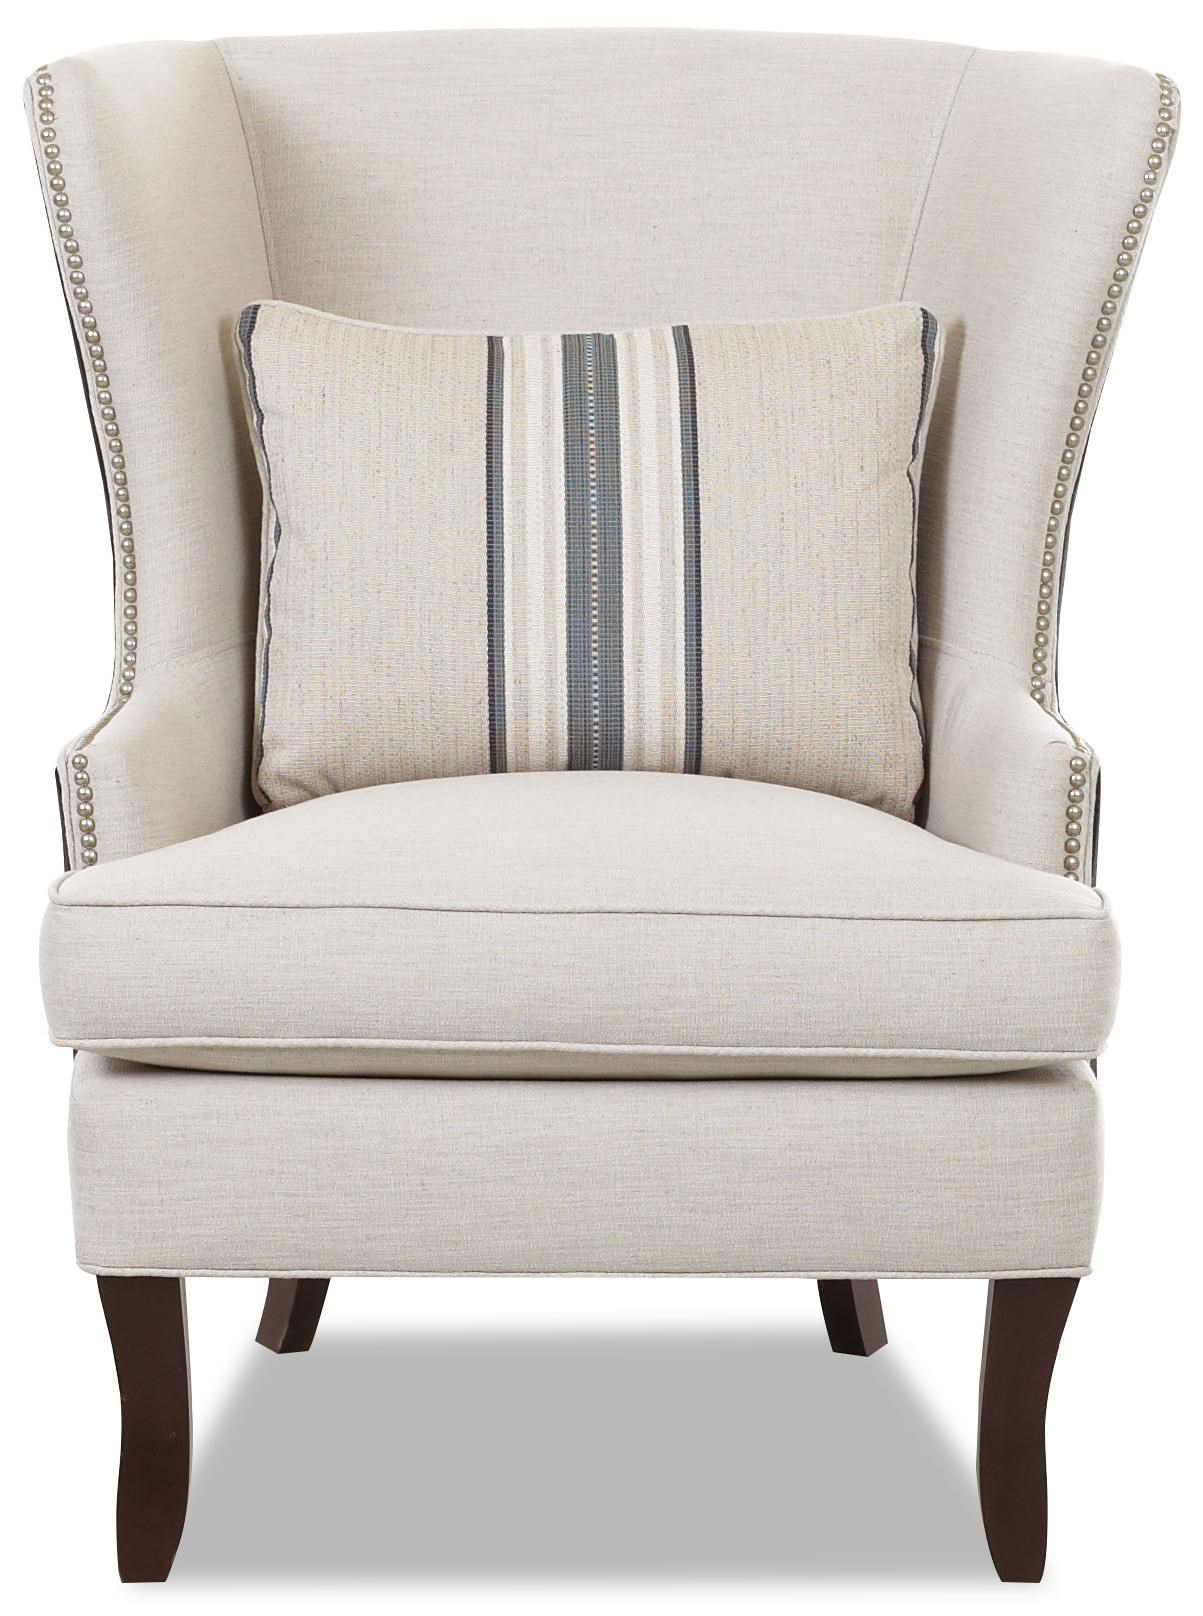 klaussner chairs and accents d9410 c transitional krauss wing chair rh dunkandbright com klaussner chair reviews klaussner chair fabrics